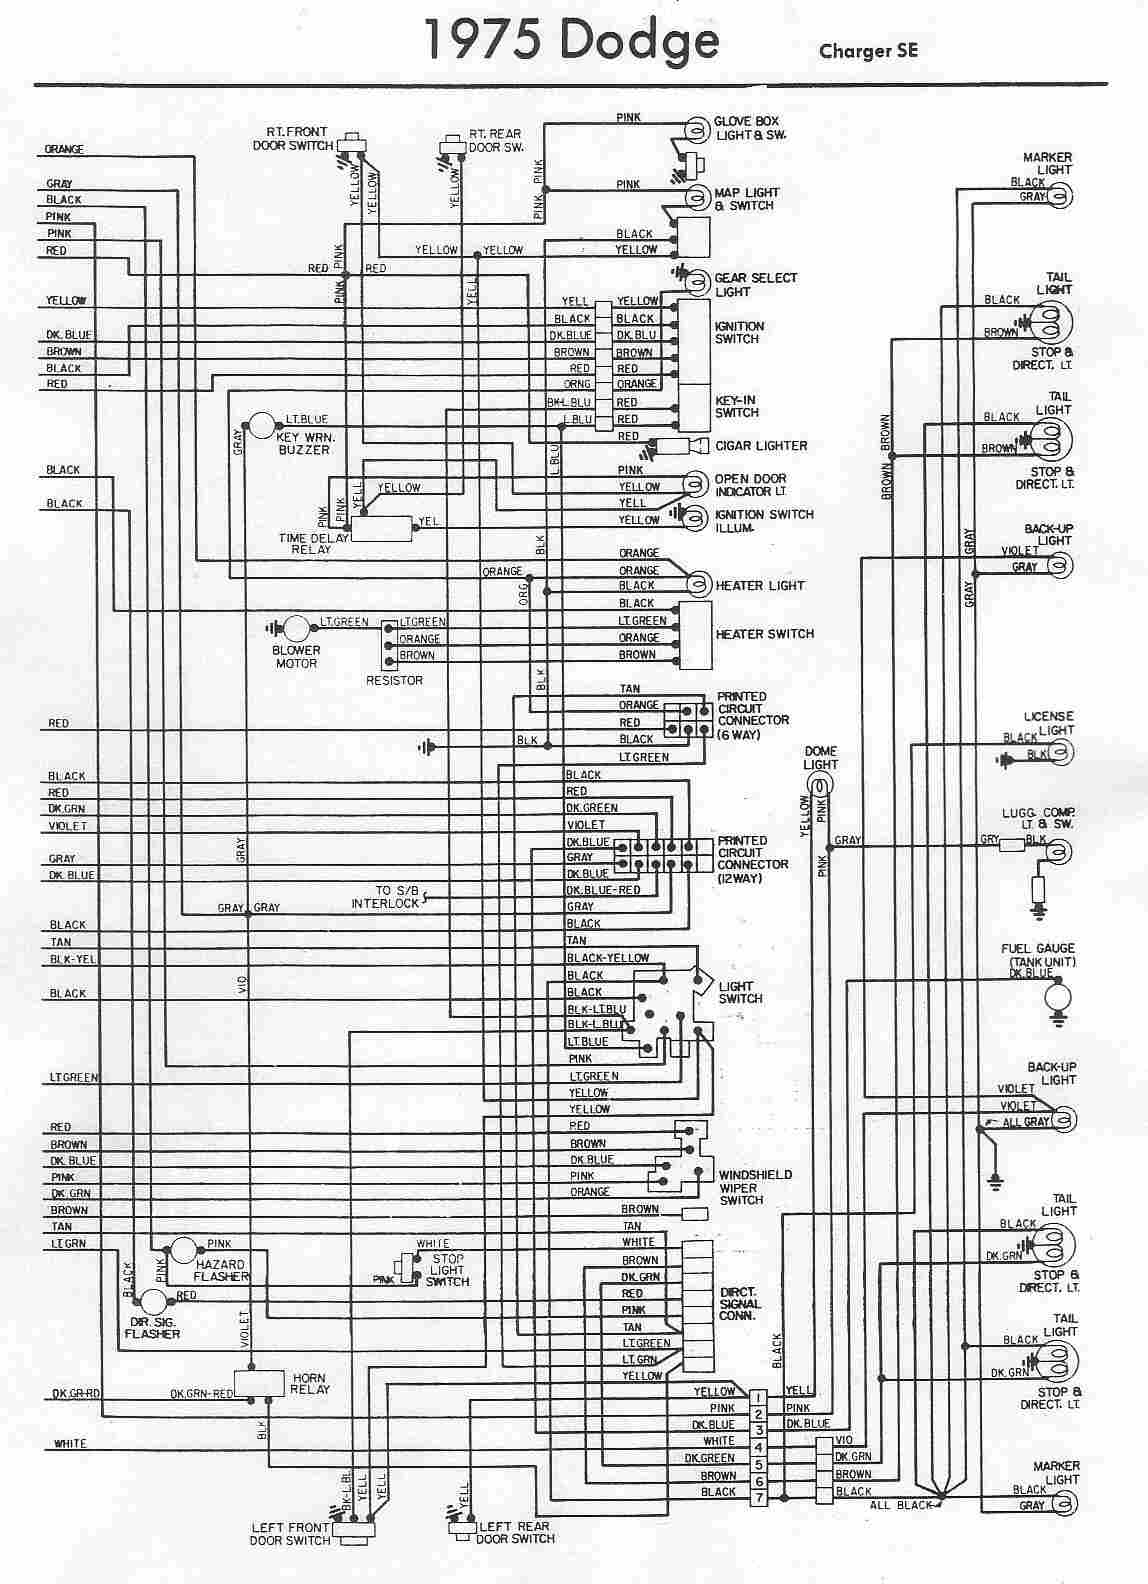 1973 dodge w200 wiring diagram wiring diagram library1978 dodge power wagon wiring diagram wiring diagram g11 [ 1148 x 1584 Pixel ]